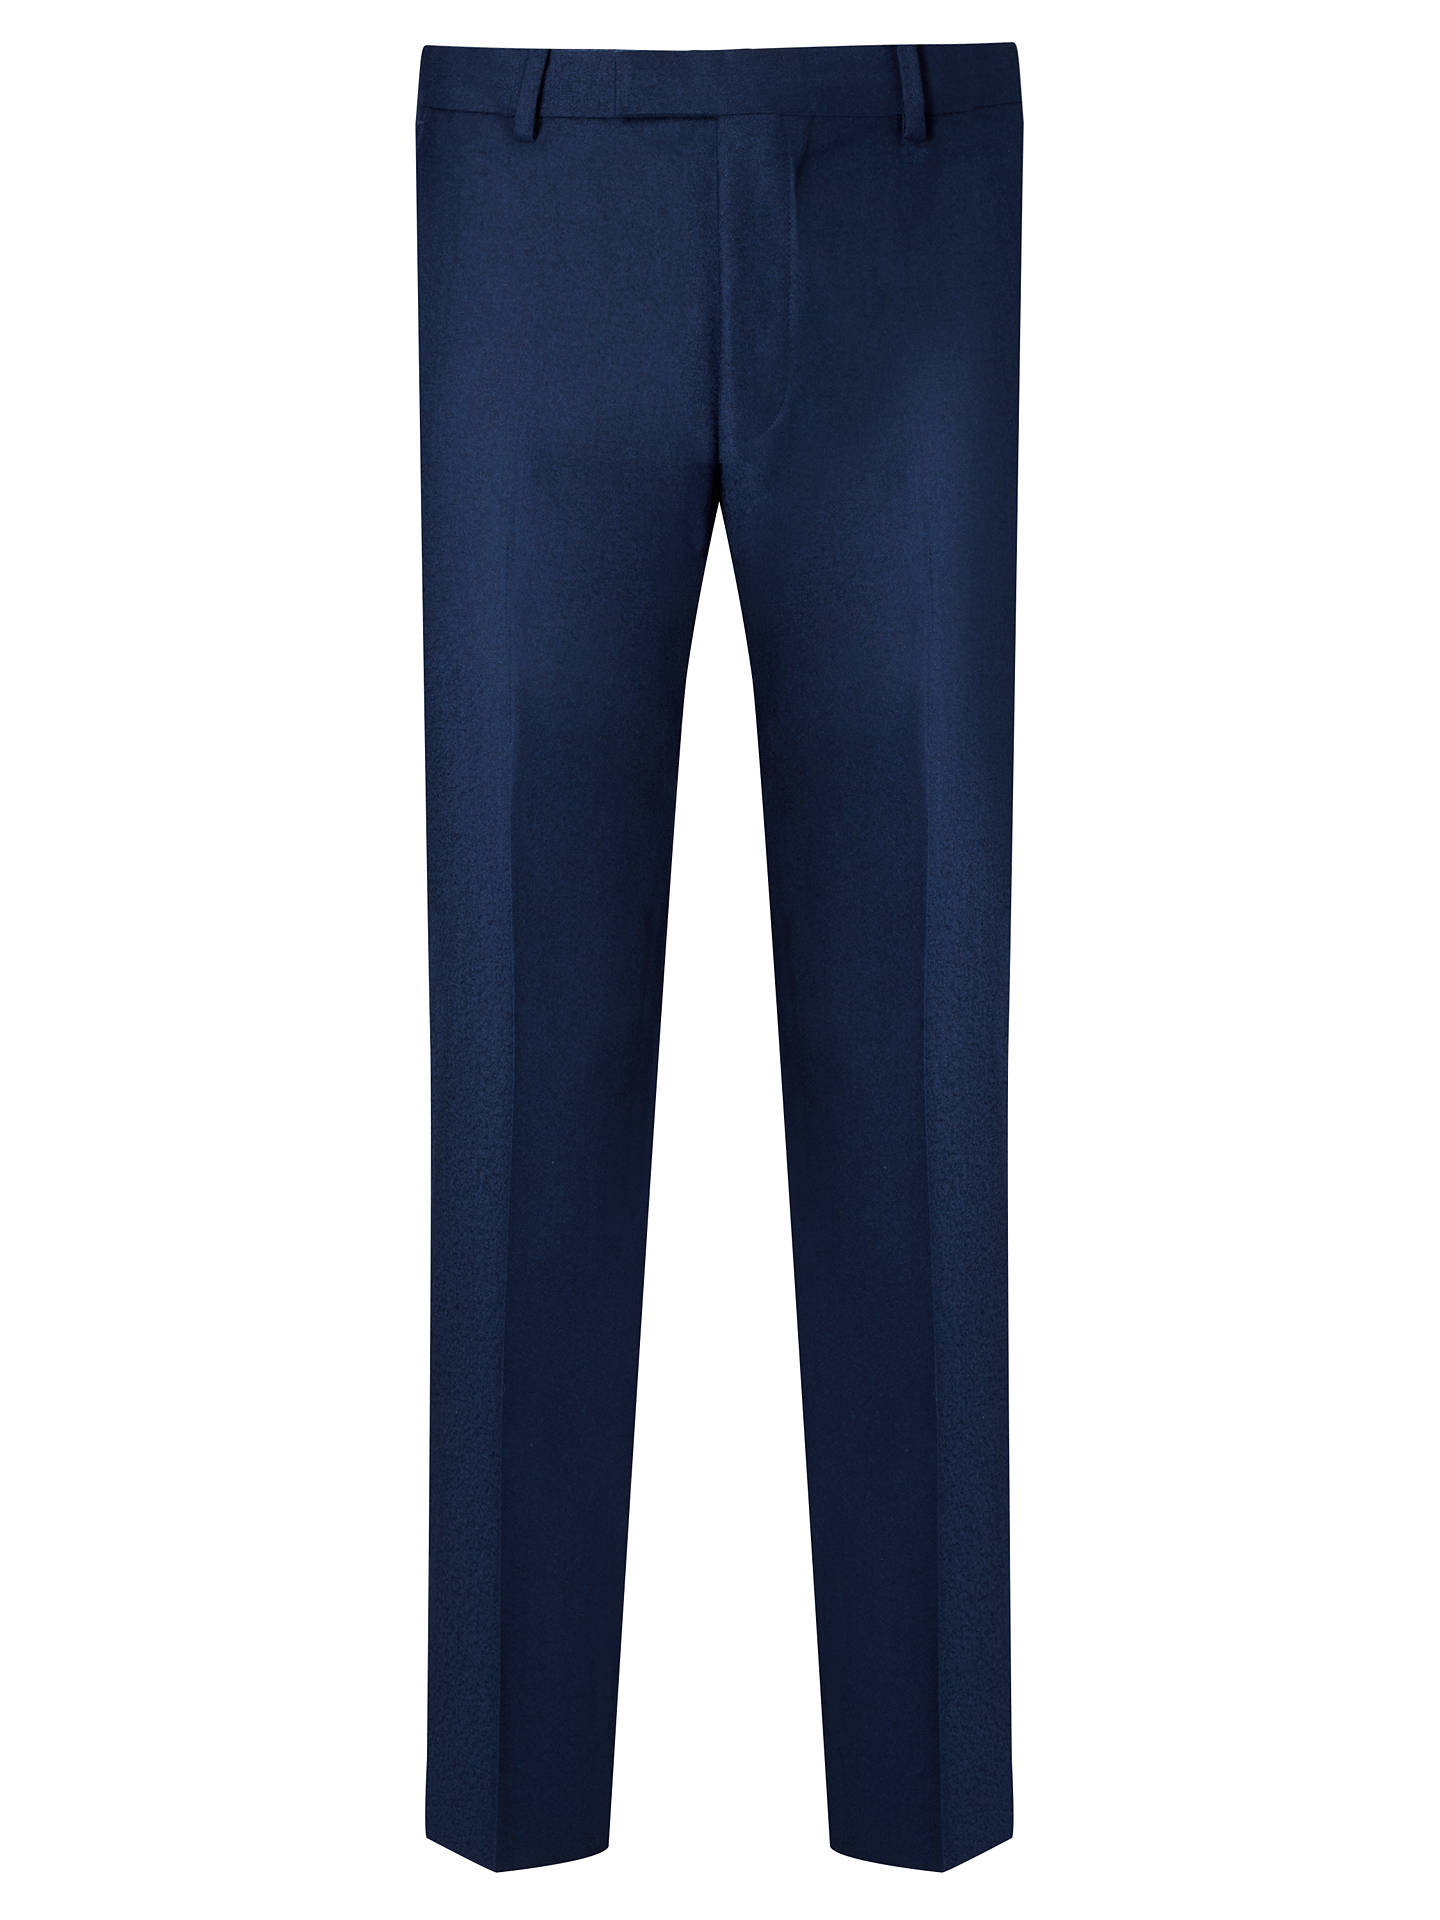 new product 90b7d c4e14 Daniel Hechter Flannel Tailored Suit Trousers, Blue at John ...